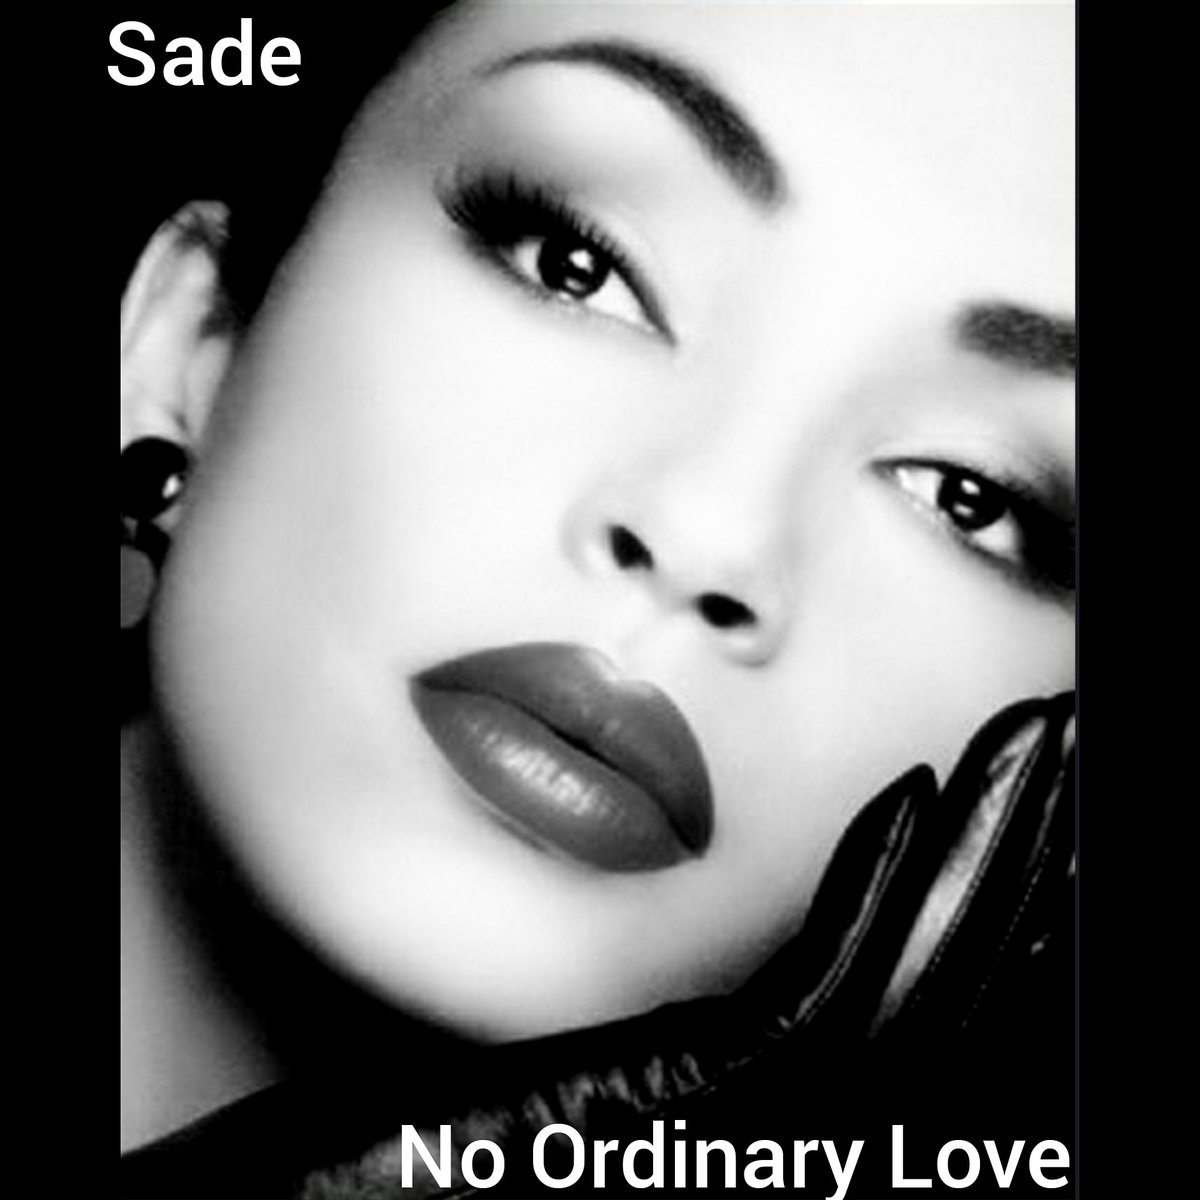 """Happy 62nd birthday to a true living legend @SadeOfficial   Sade's beautiful music has inspired me throughout my life and """"No Ordinary Love"""" is one of my favorite love songs of all time.  #HappyBirthday #Sade #Singer #Songwriter #Actress #Legend #Icon #Artist #Music #GoodMusic"""